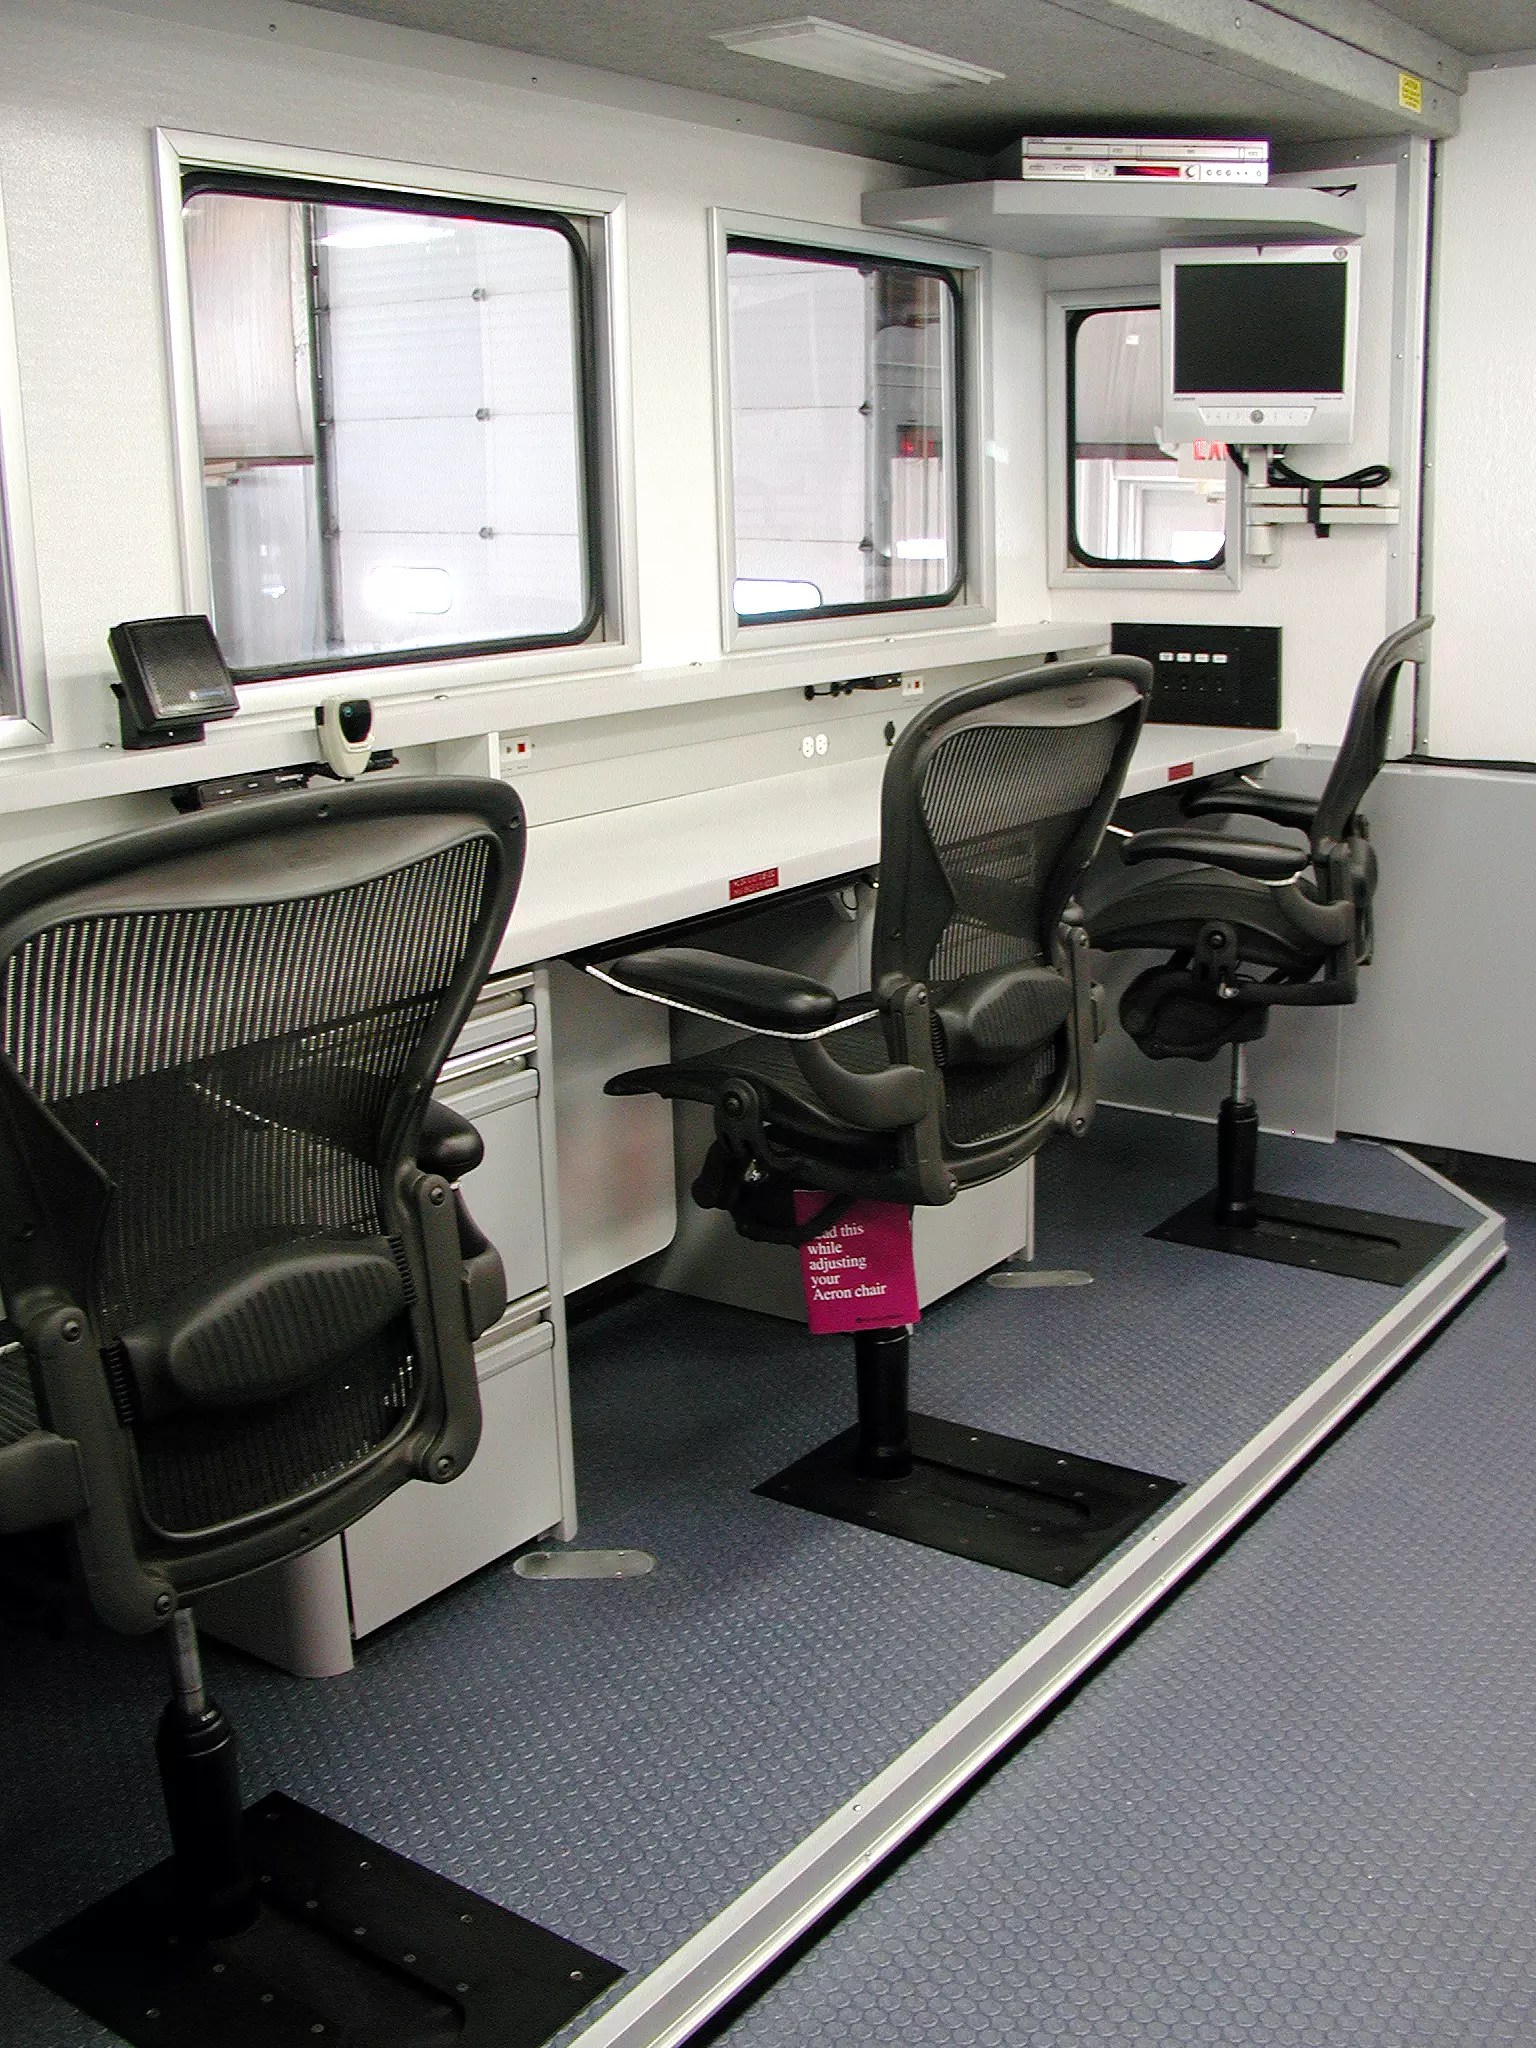 Workstation with three office chairs in a row that are equipped with Valid's adjustable chair slides.